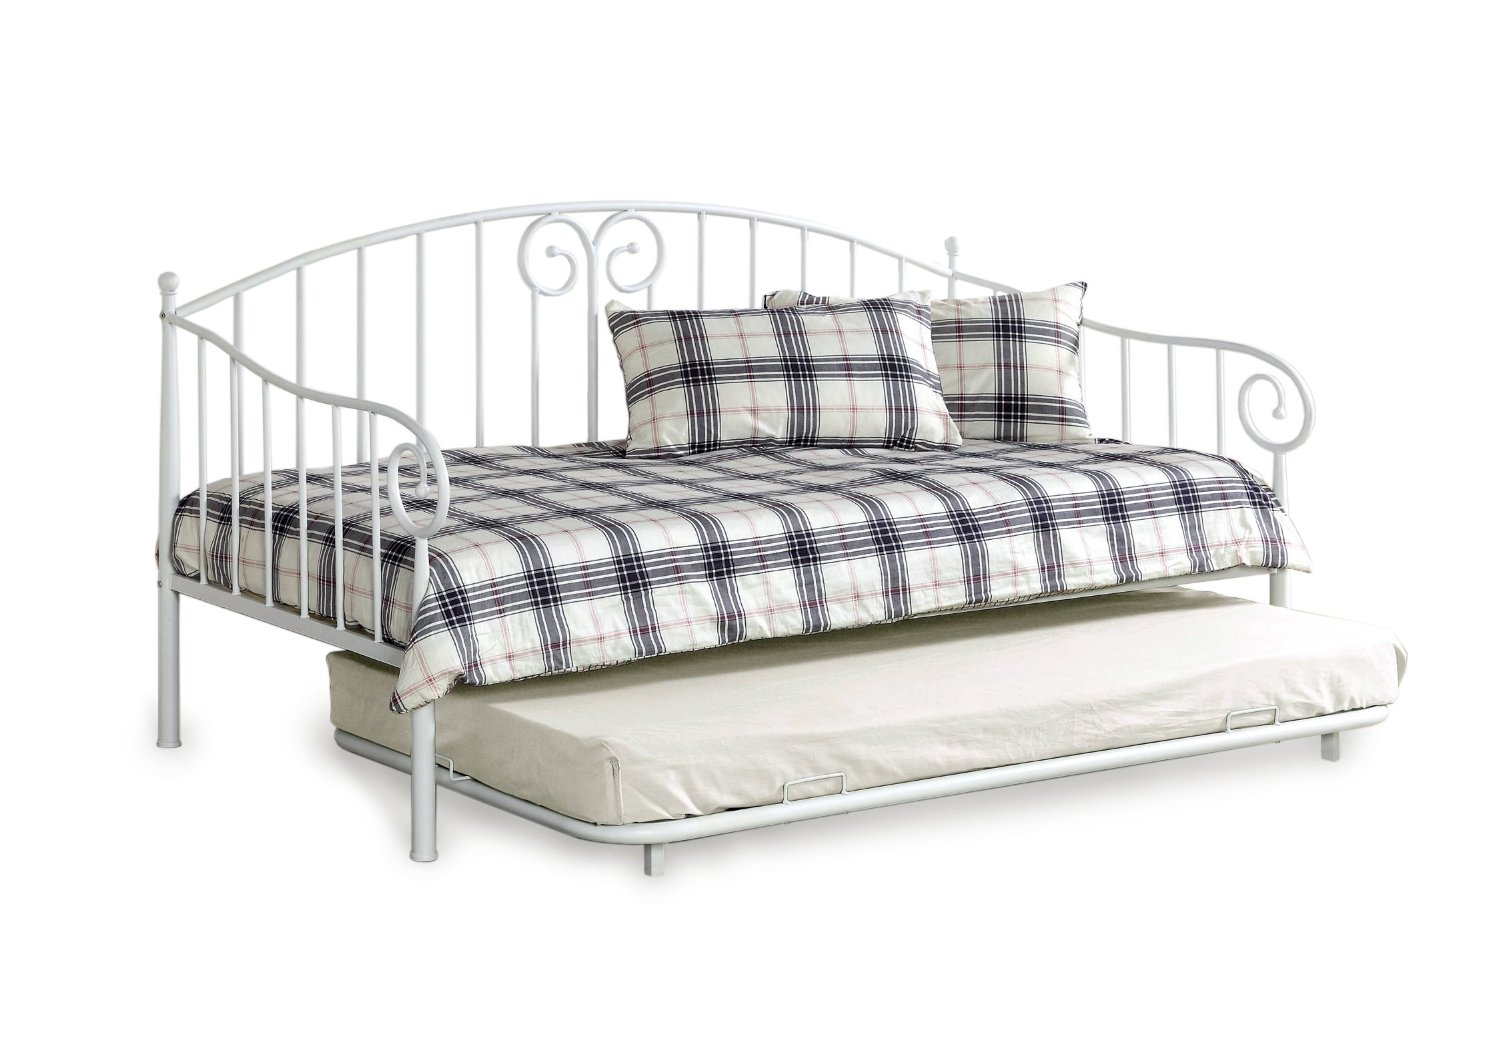 traditional contemporary daybeds same white metal frame with trundle underneath but